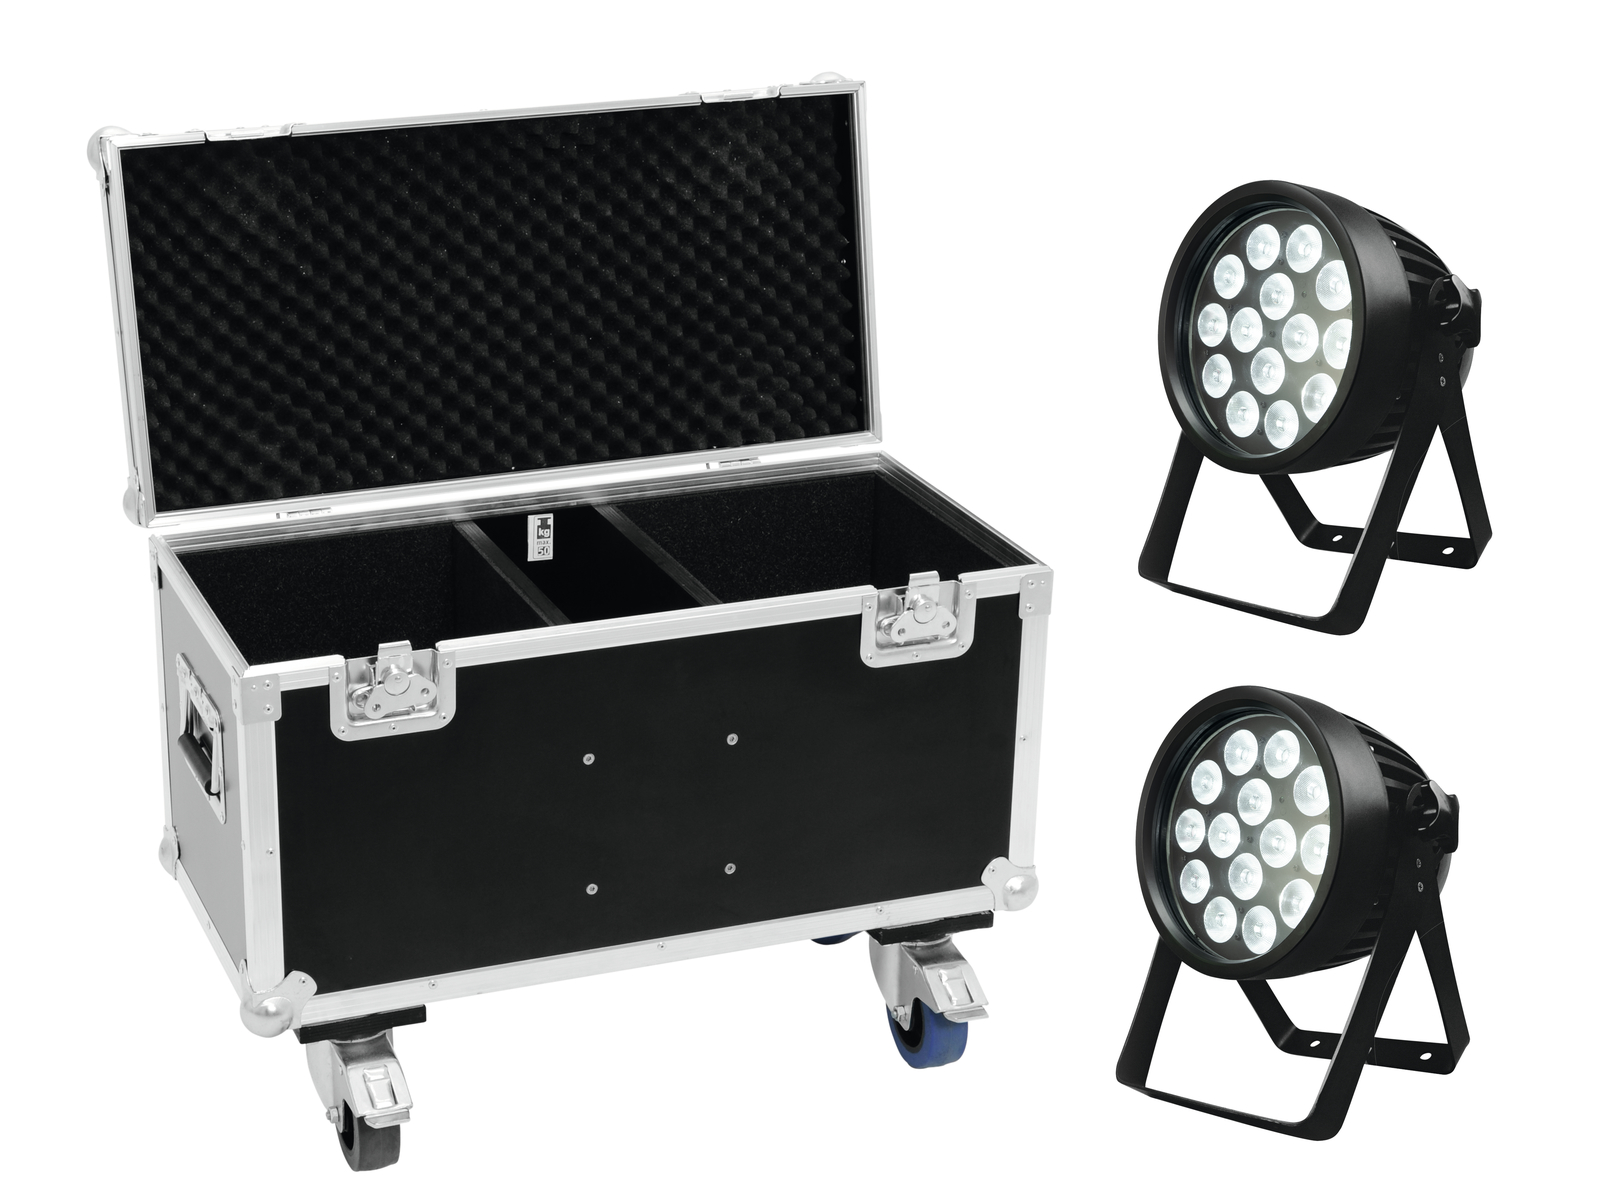 EUROLITE Set 2x LED IP PAR 14x8W QCL + Case mit Rollen